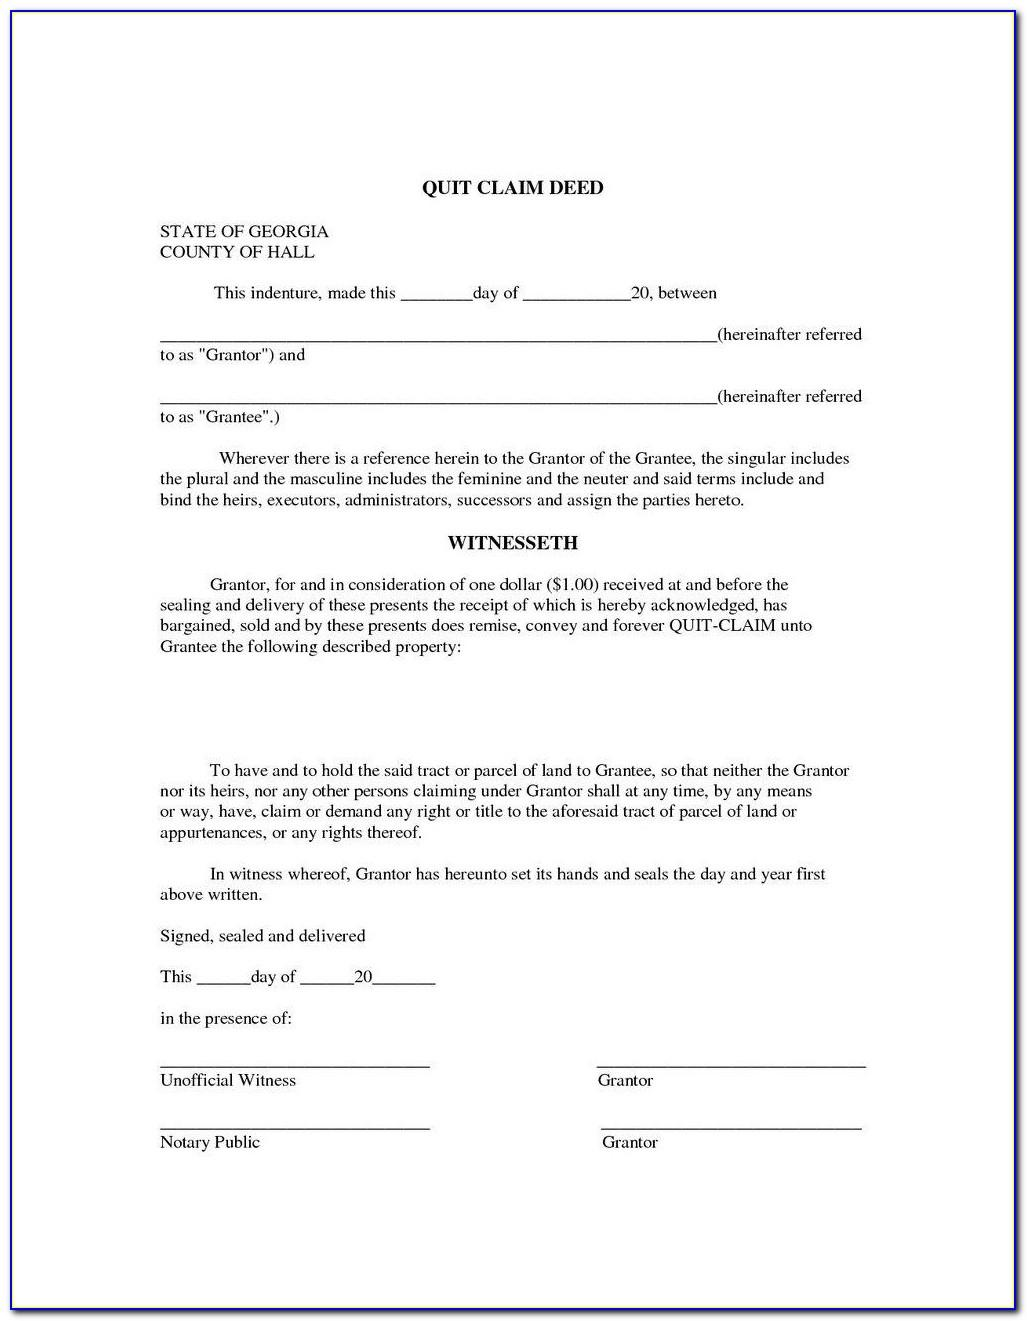 Quit Claim Deed Form Free Download Uk